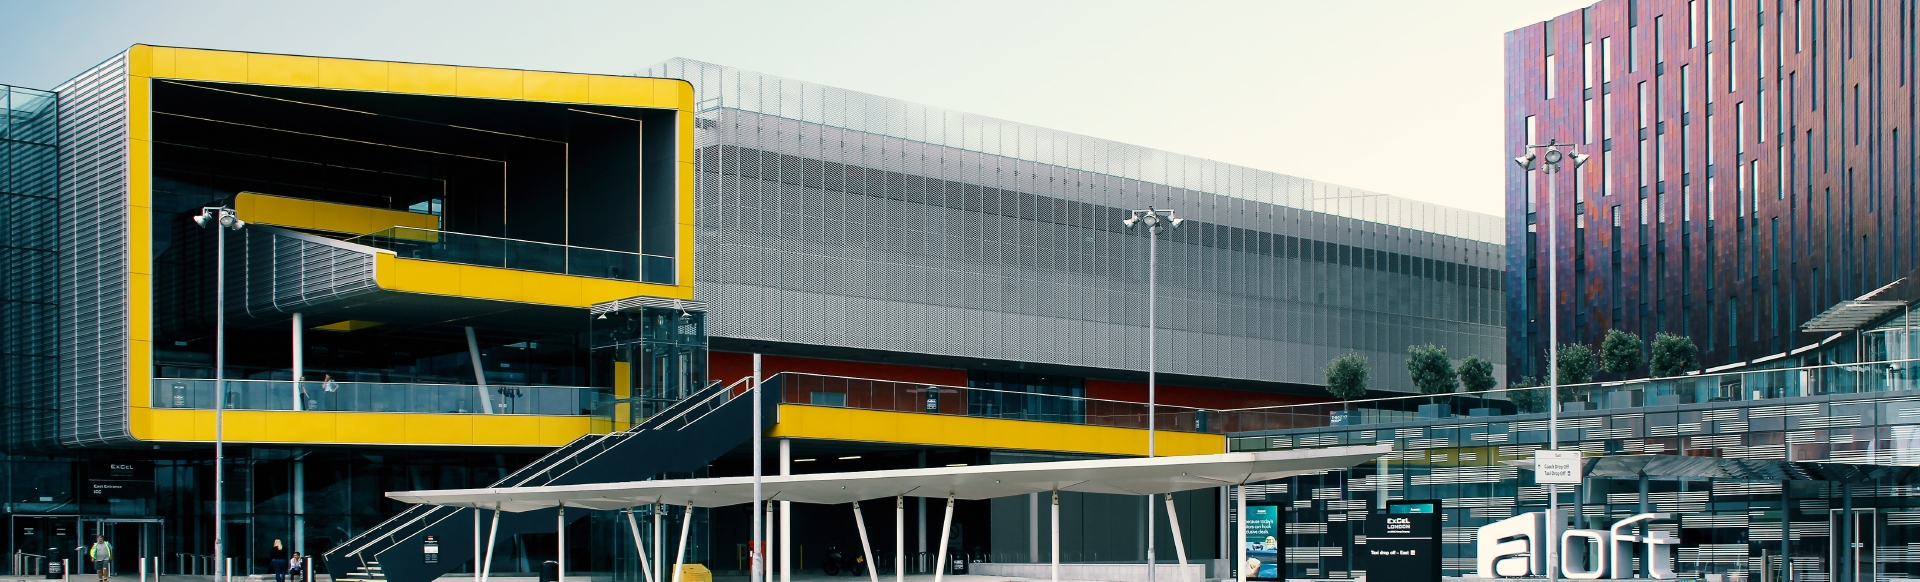 ExCeL London conference and event venue in East London